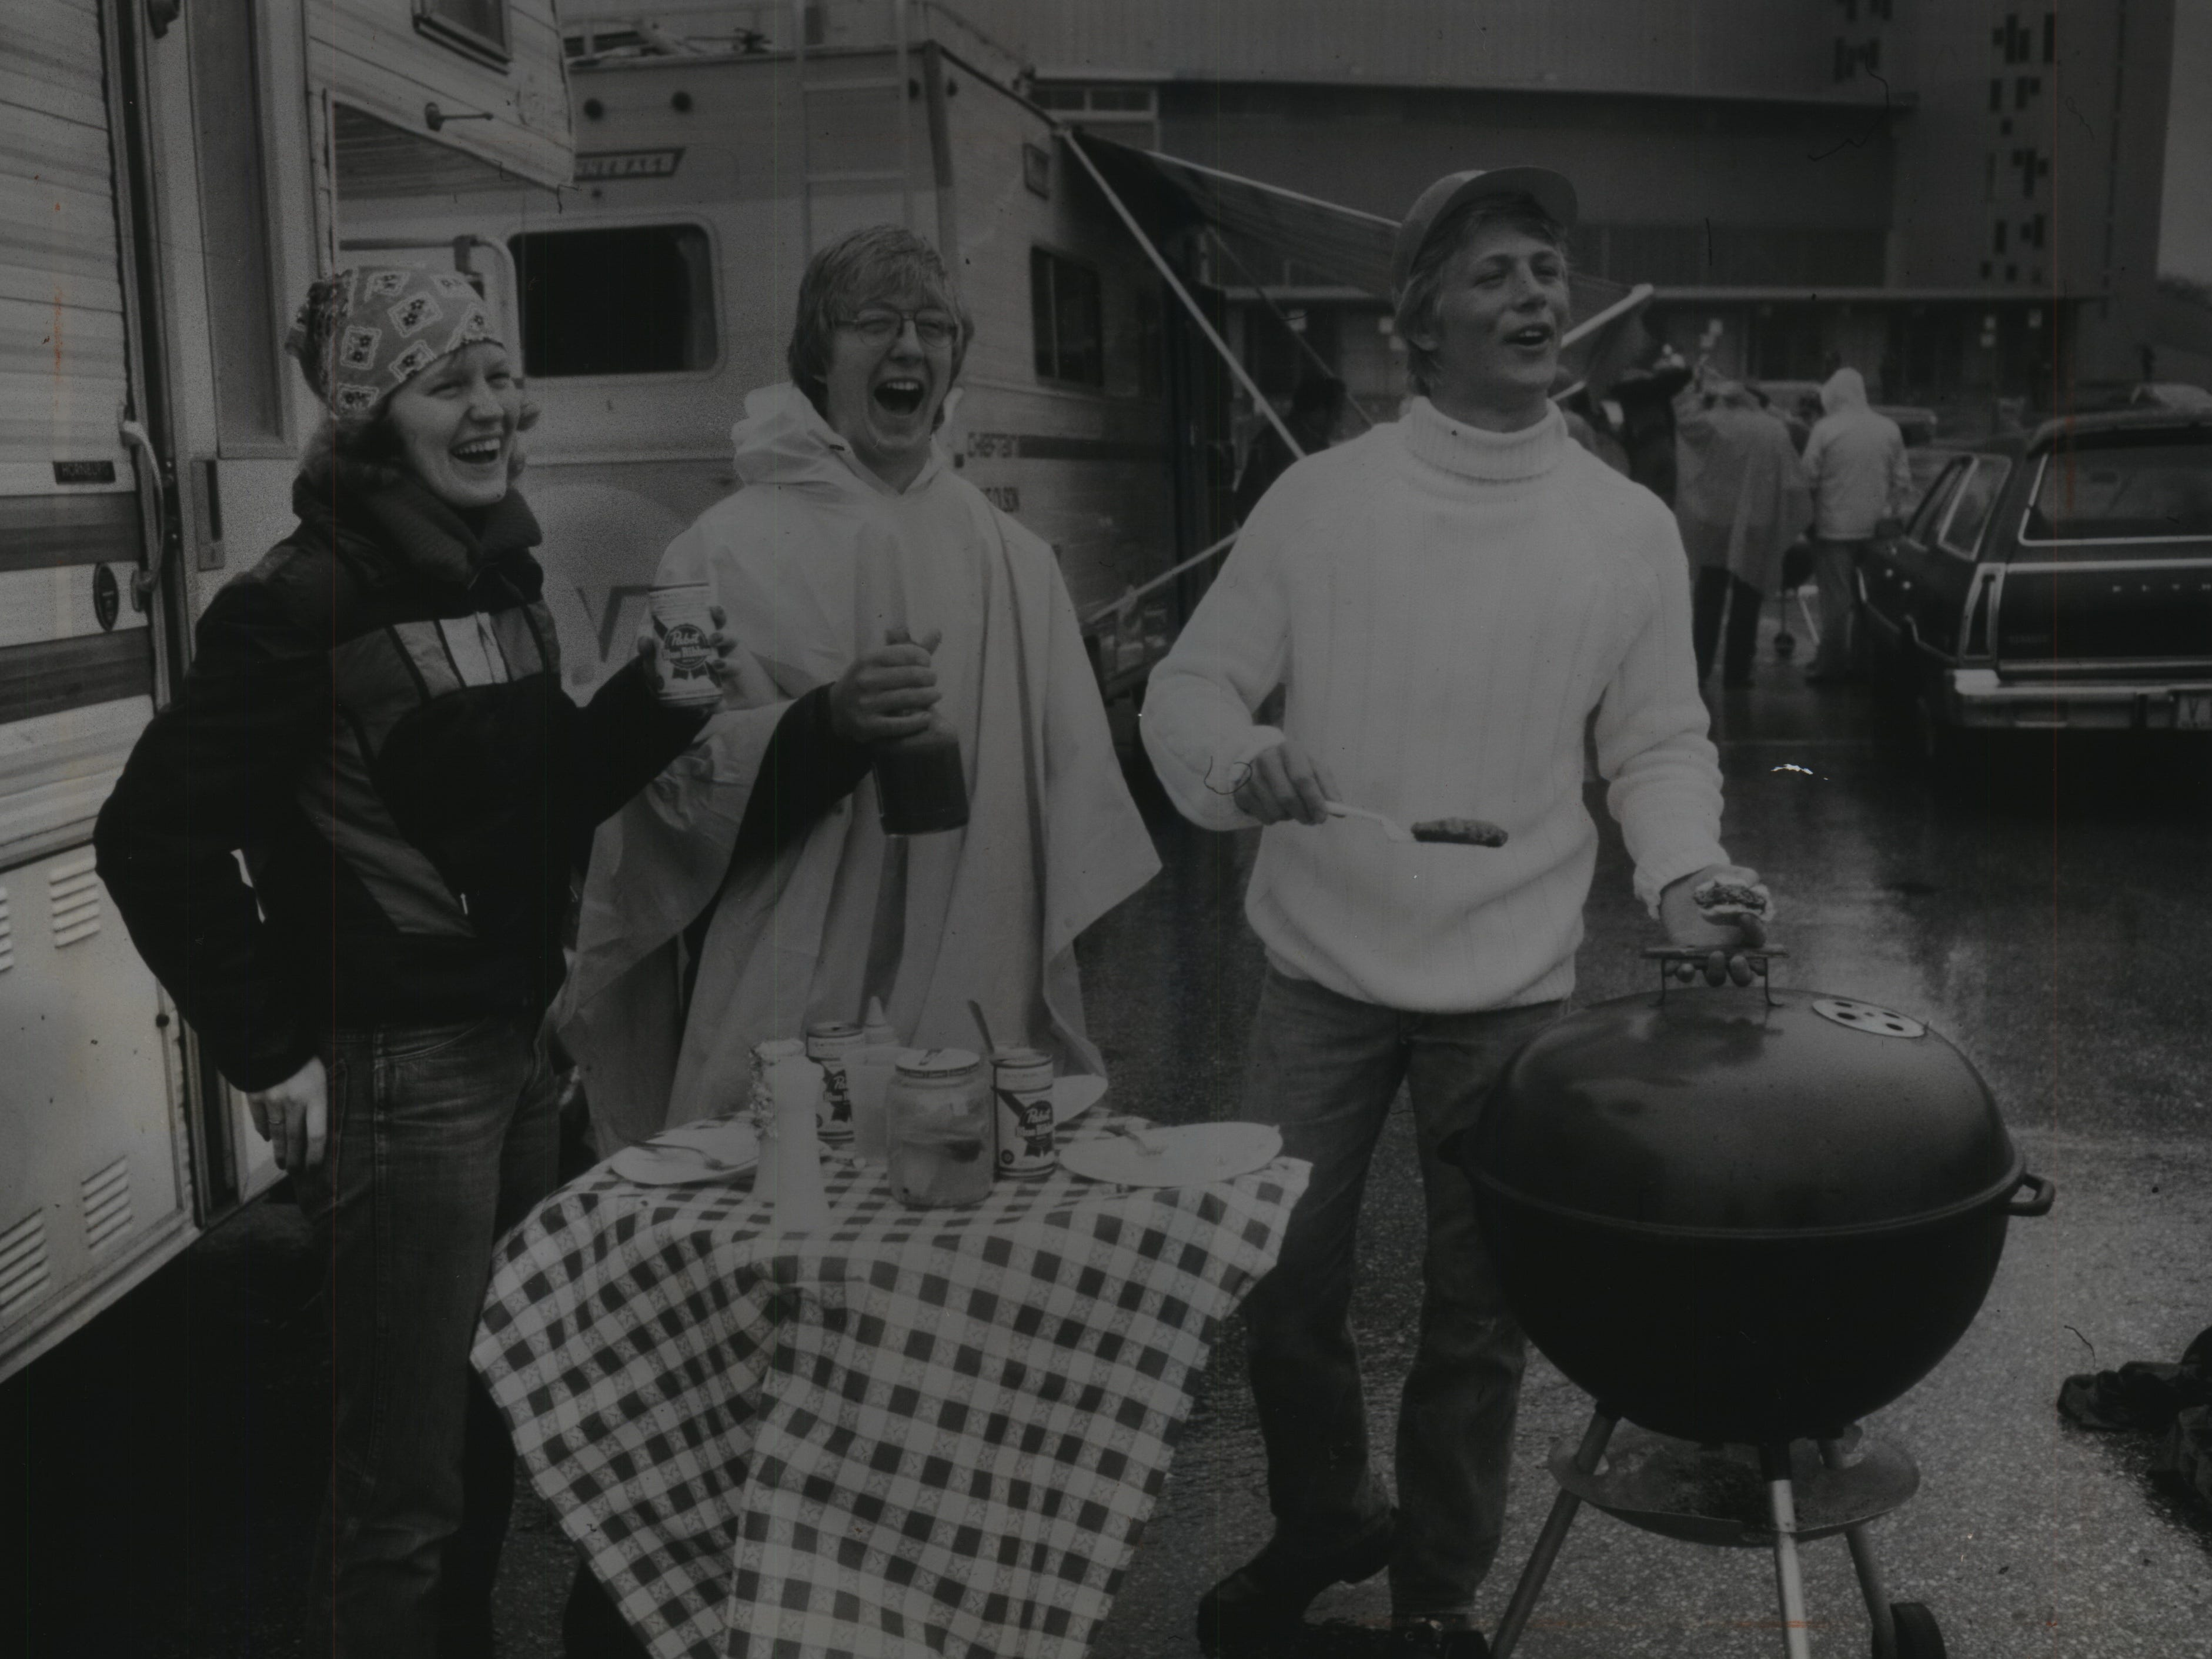 Despite the rain, a brothers-and-sister act, Vicki and David Noll of Johnson Creek, and Leonard Noll of Waukesha (left to right), cook out in the County Stadium parking lot on what was supposed to be opening day of the 1978 baseball season on April 6, 1978. The game itself was postponed, but tailgating went on as scheduled. (The Brewers won the eventual home opener on April 7, 11-3 over the Baltimore Orioles.) This photo was on the front page of the April 7, 1978, Milwaukee Sentinel.